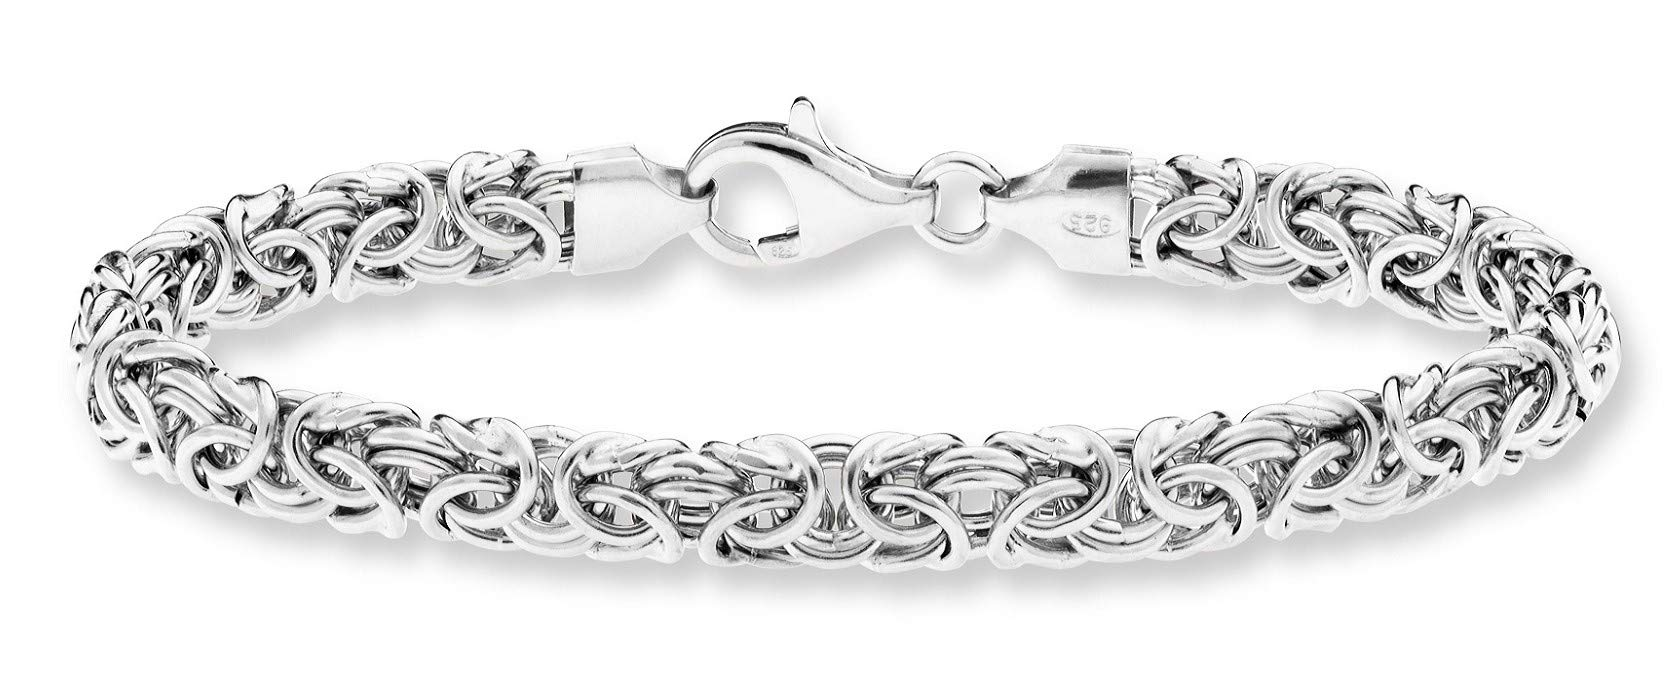 MiaBella 925 Sterling Silver Italian 6mm Byzantine Link Chain Bracelet for Women, 7.25'', 8'' (7.25, Sterling-Silver)